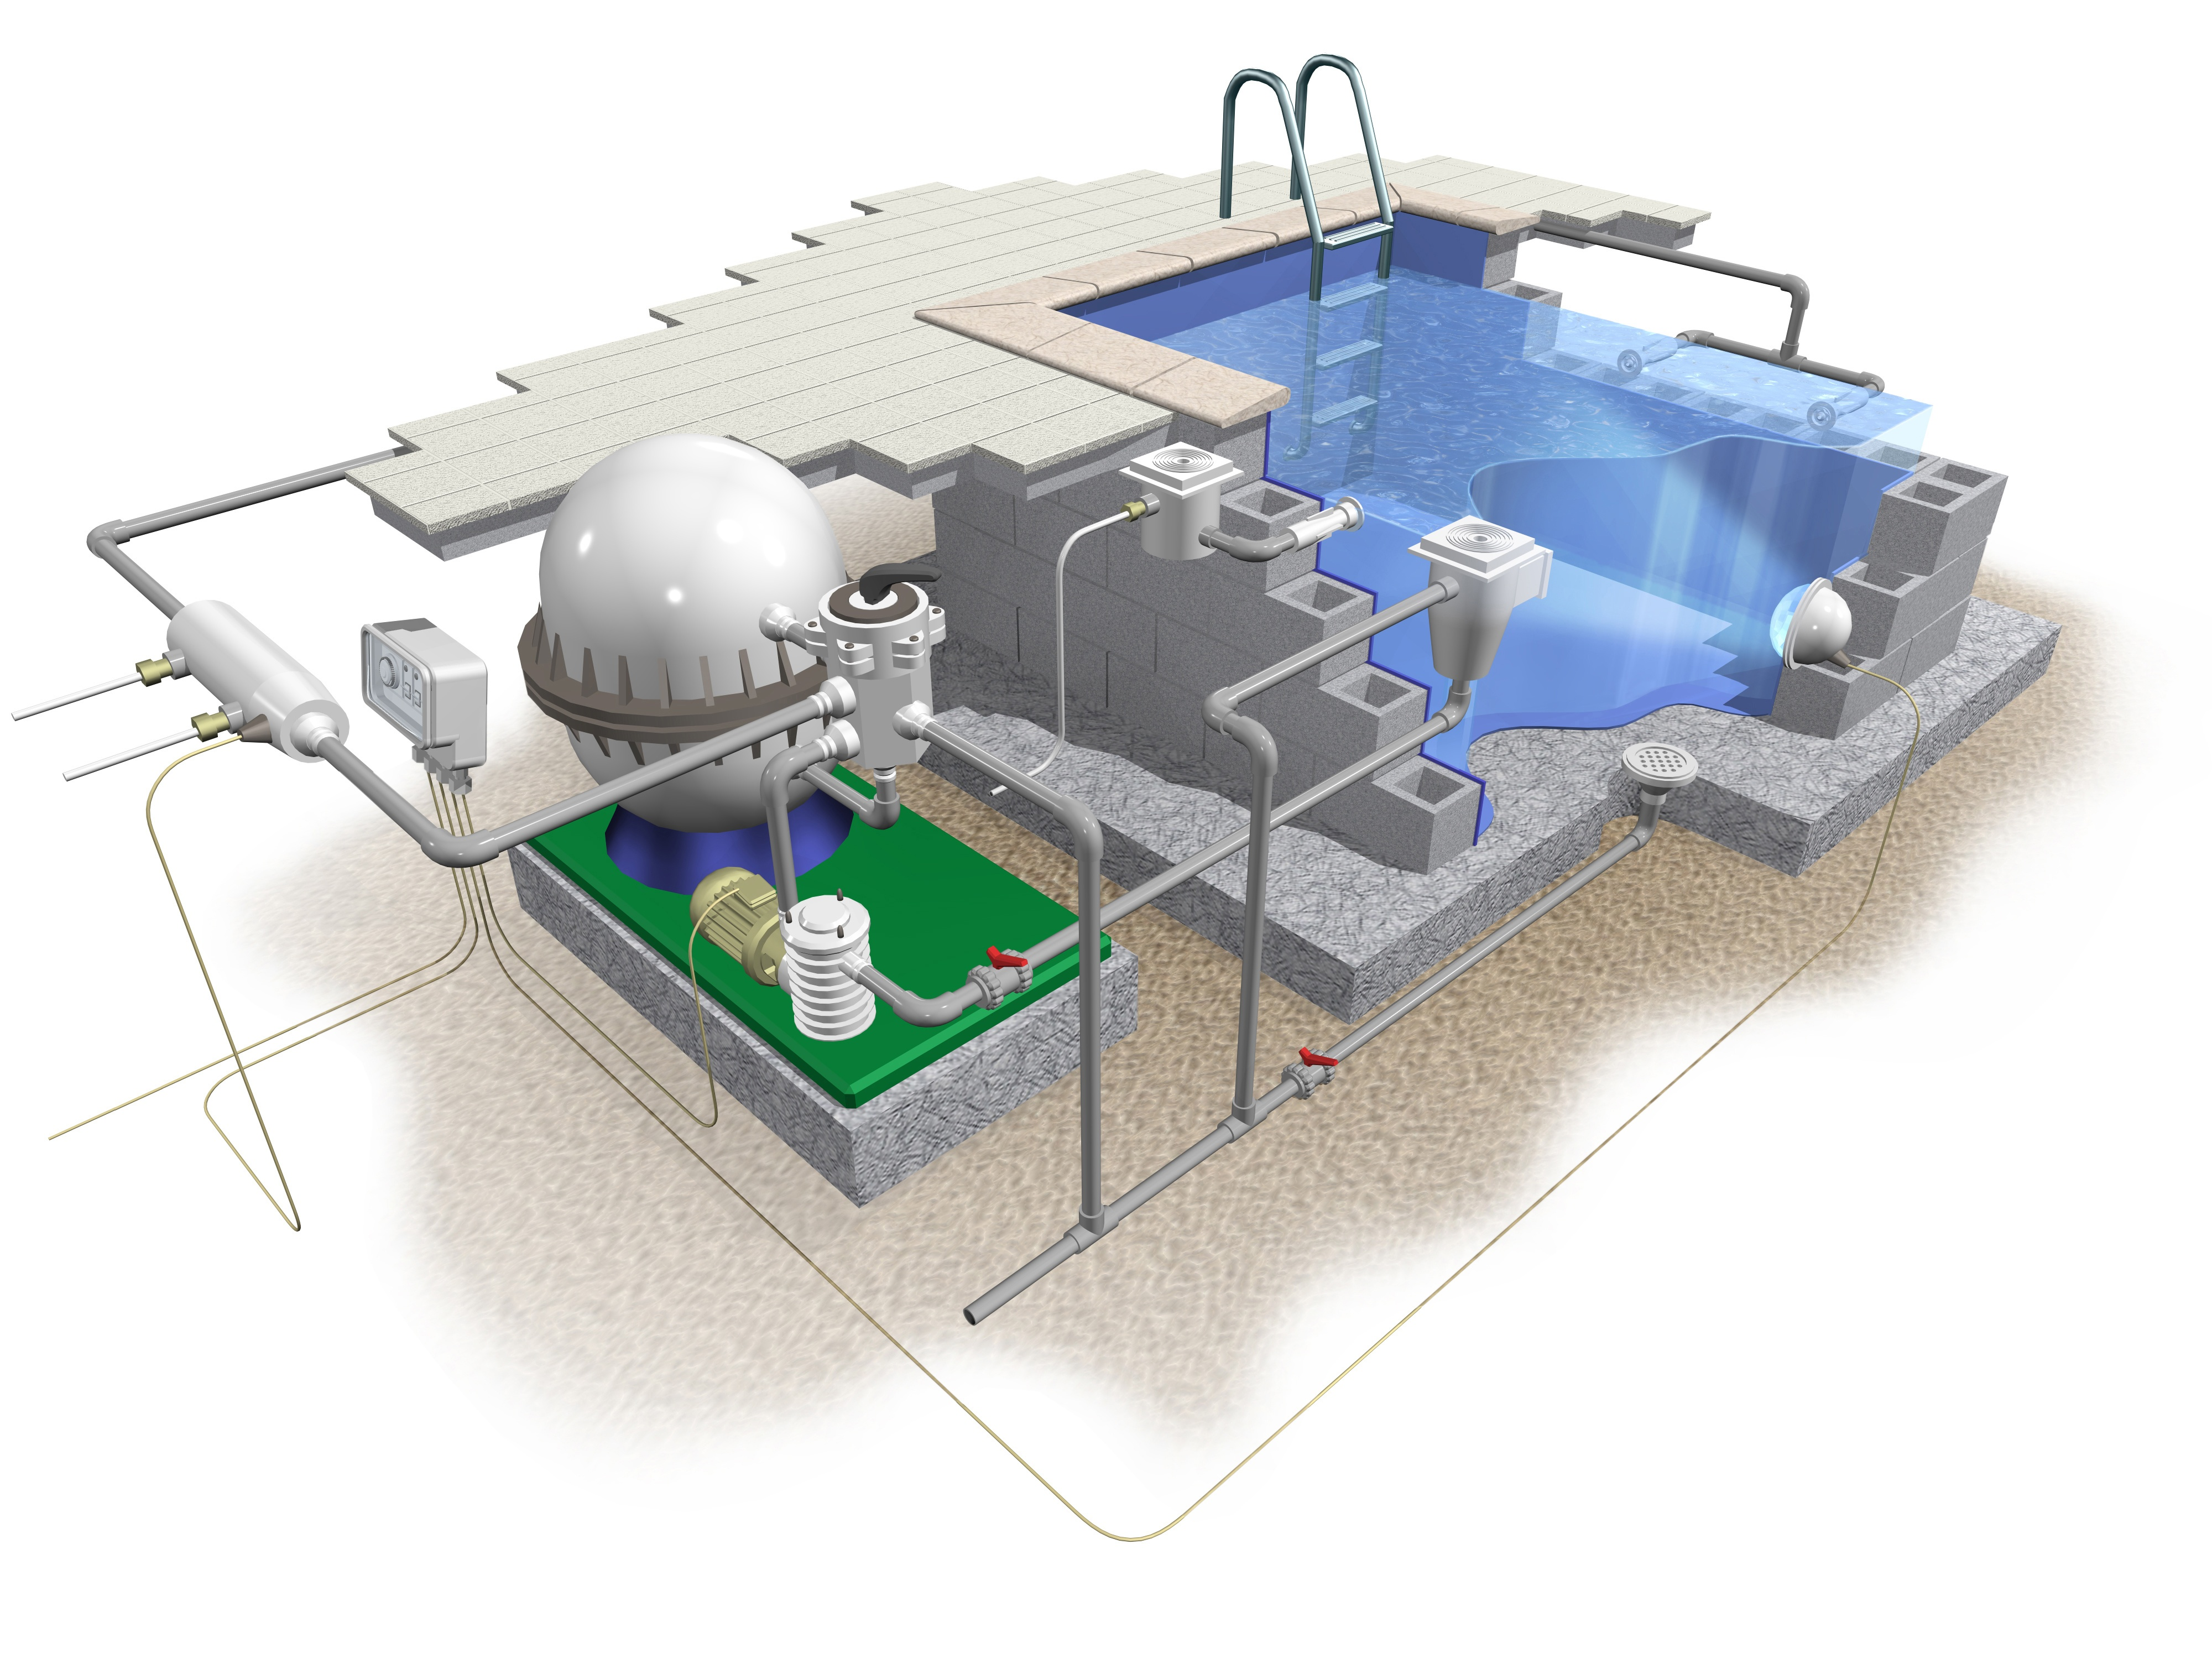 Pool Contractors in Baton Rouge: How Much Can You Save With the Right Pump?